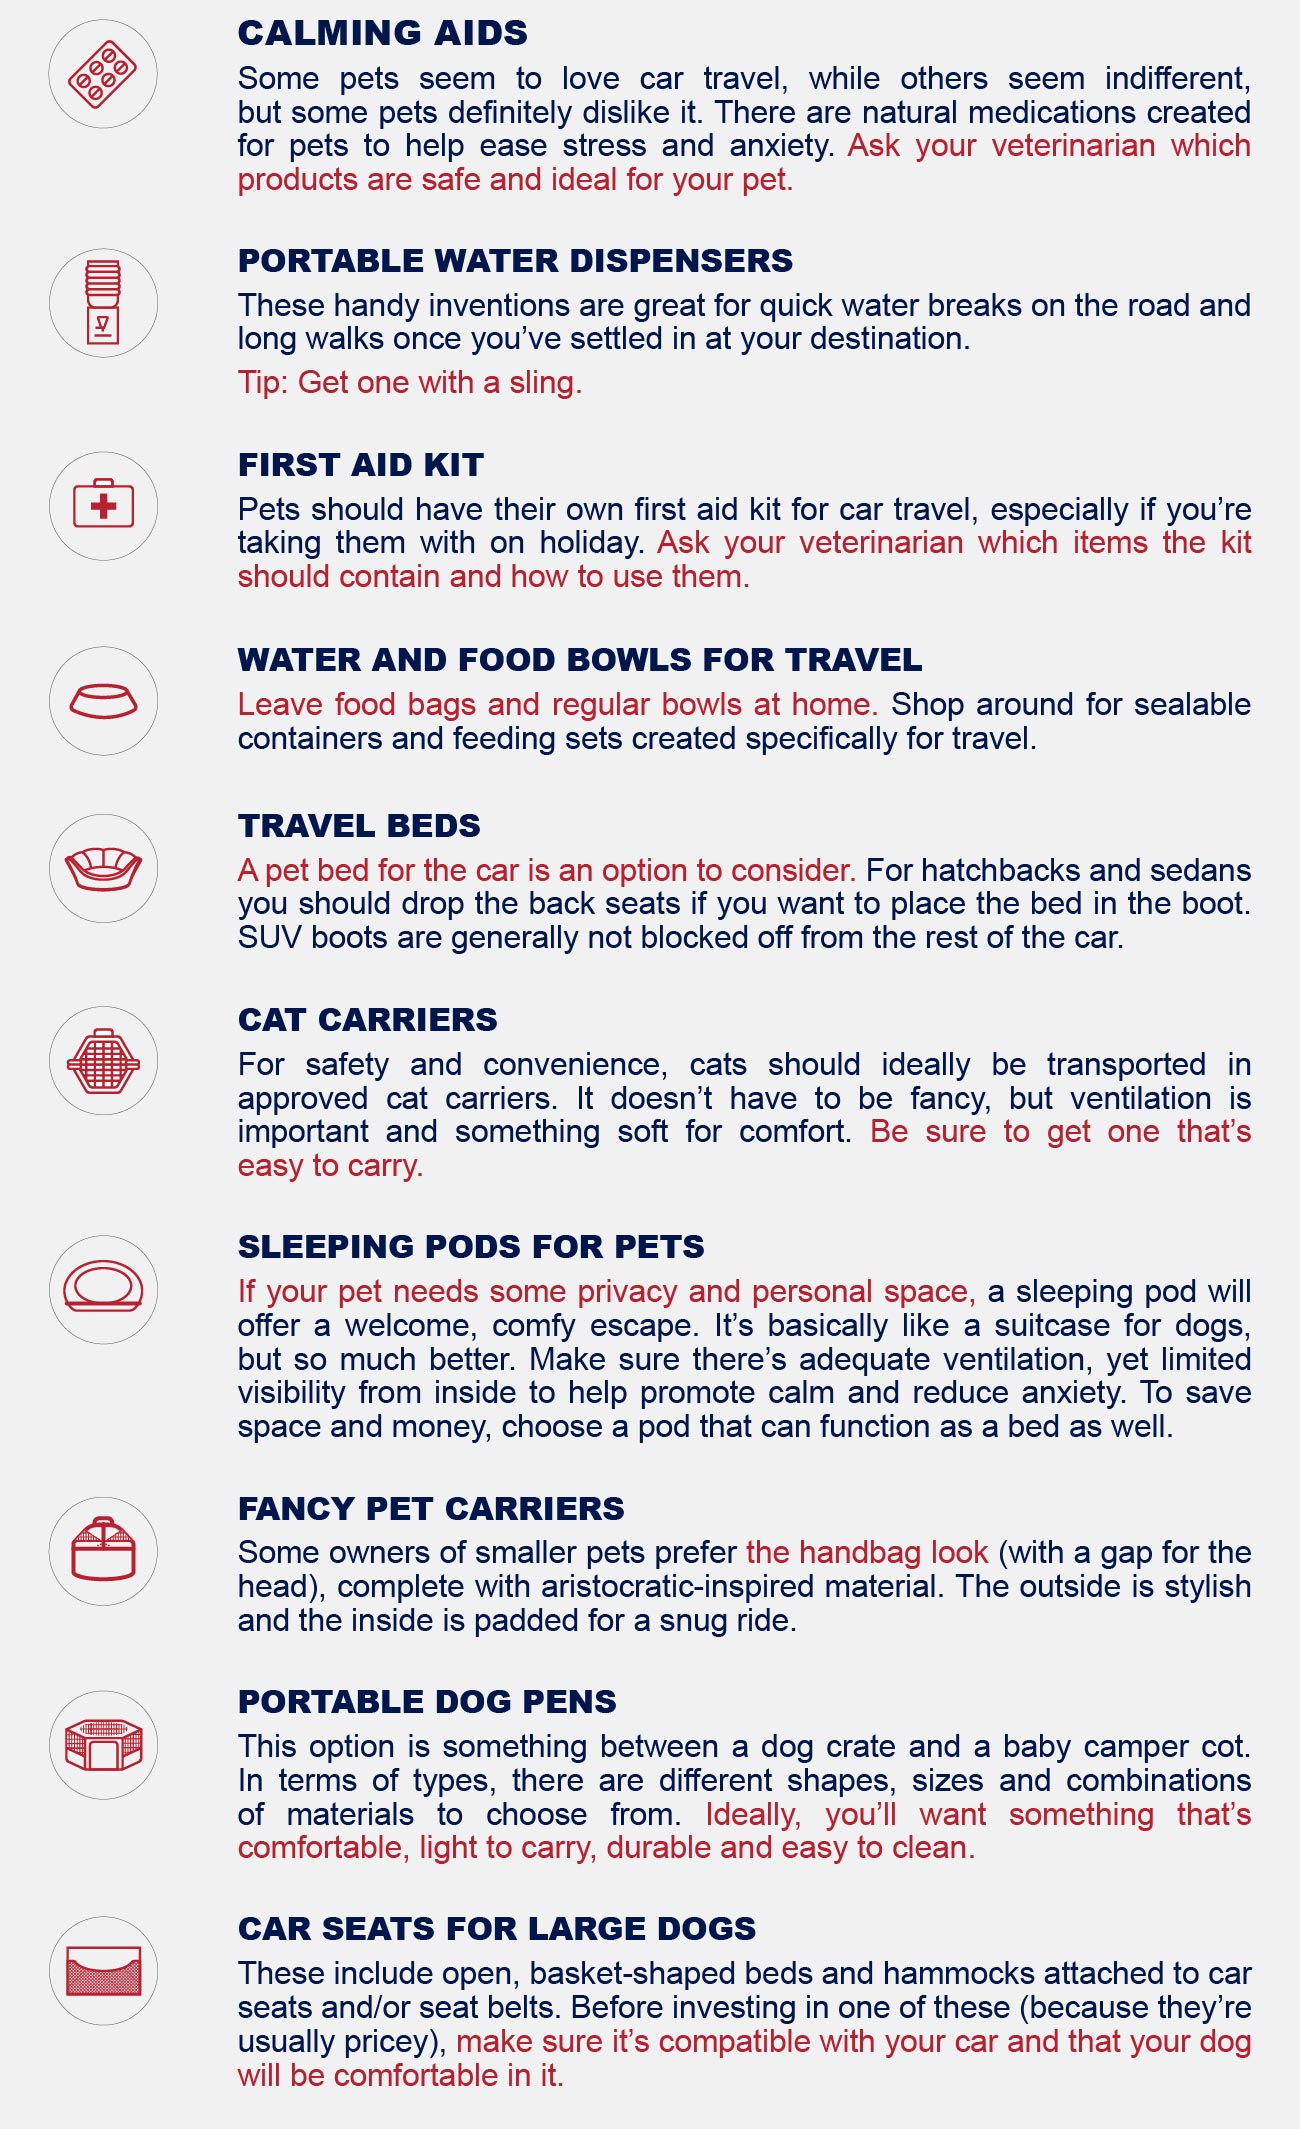 travel accessories and equipment for safe car travel infographic